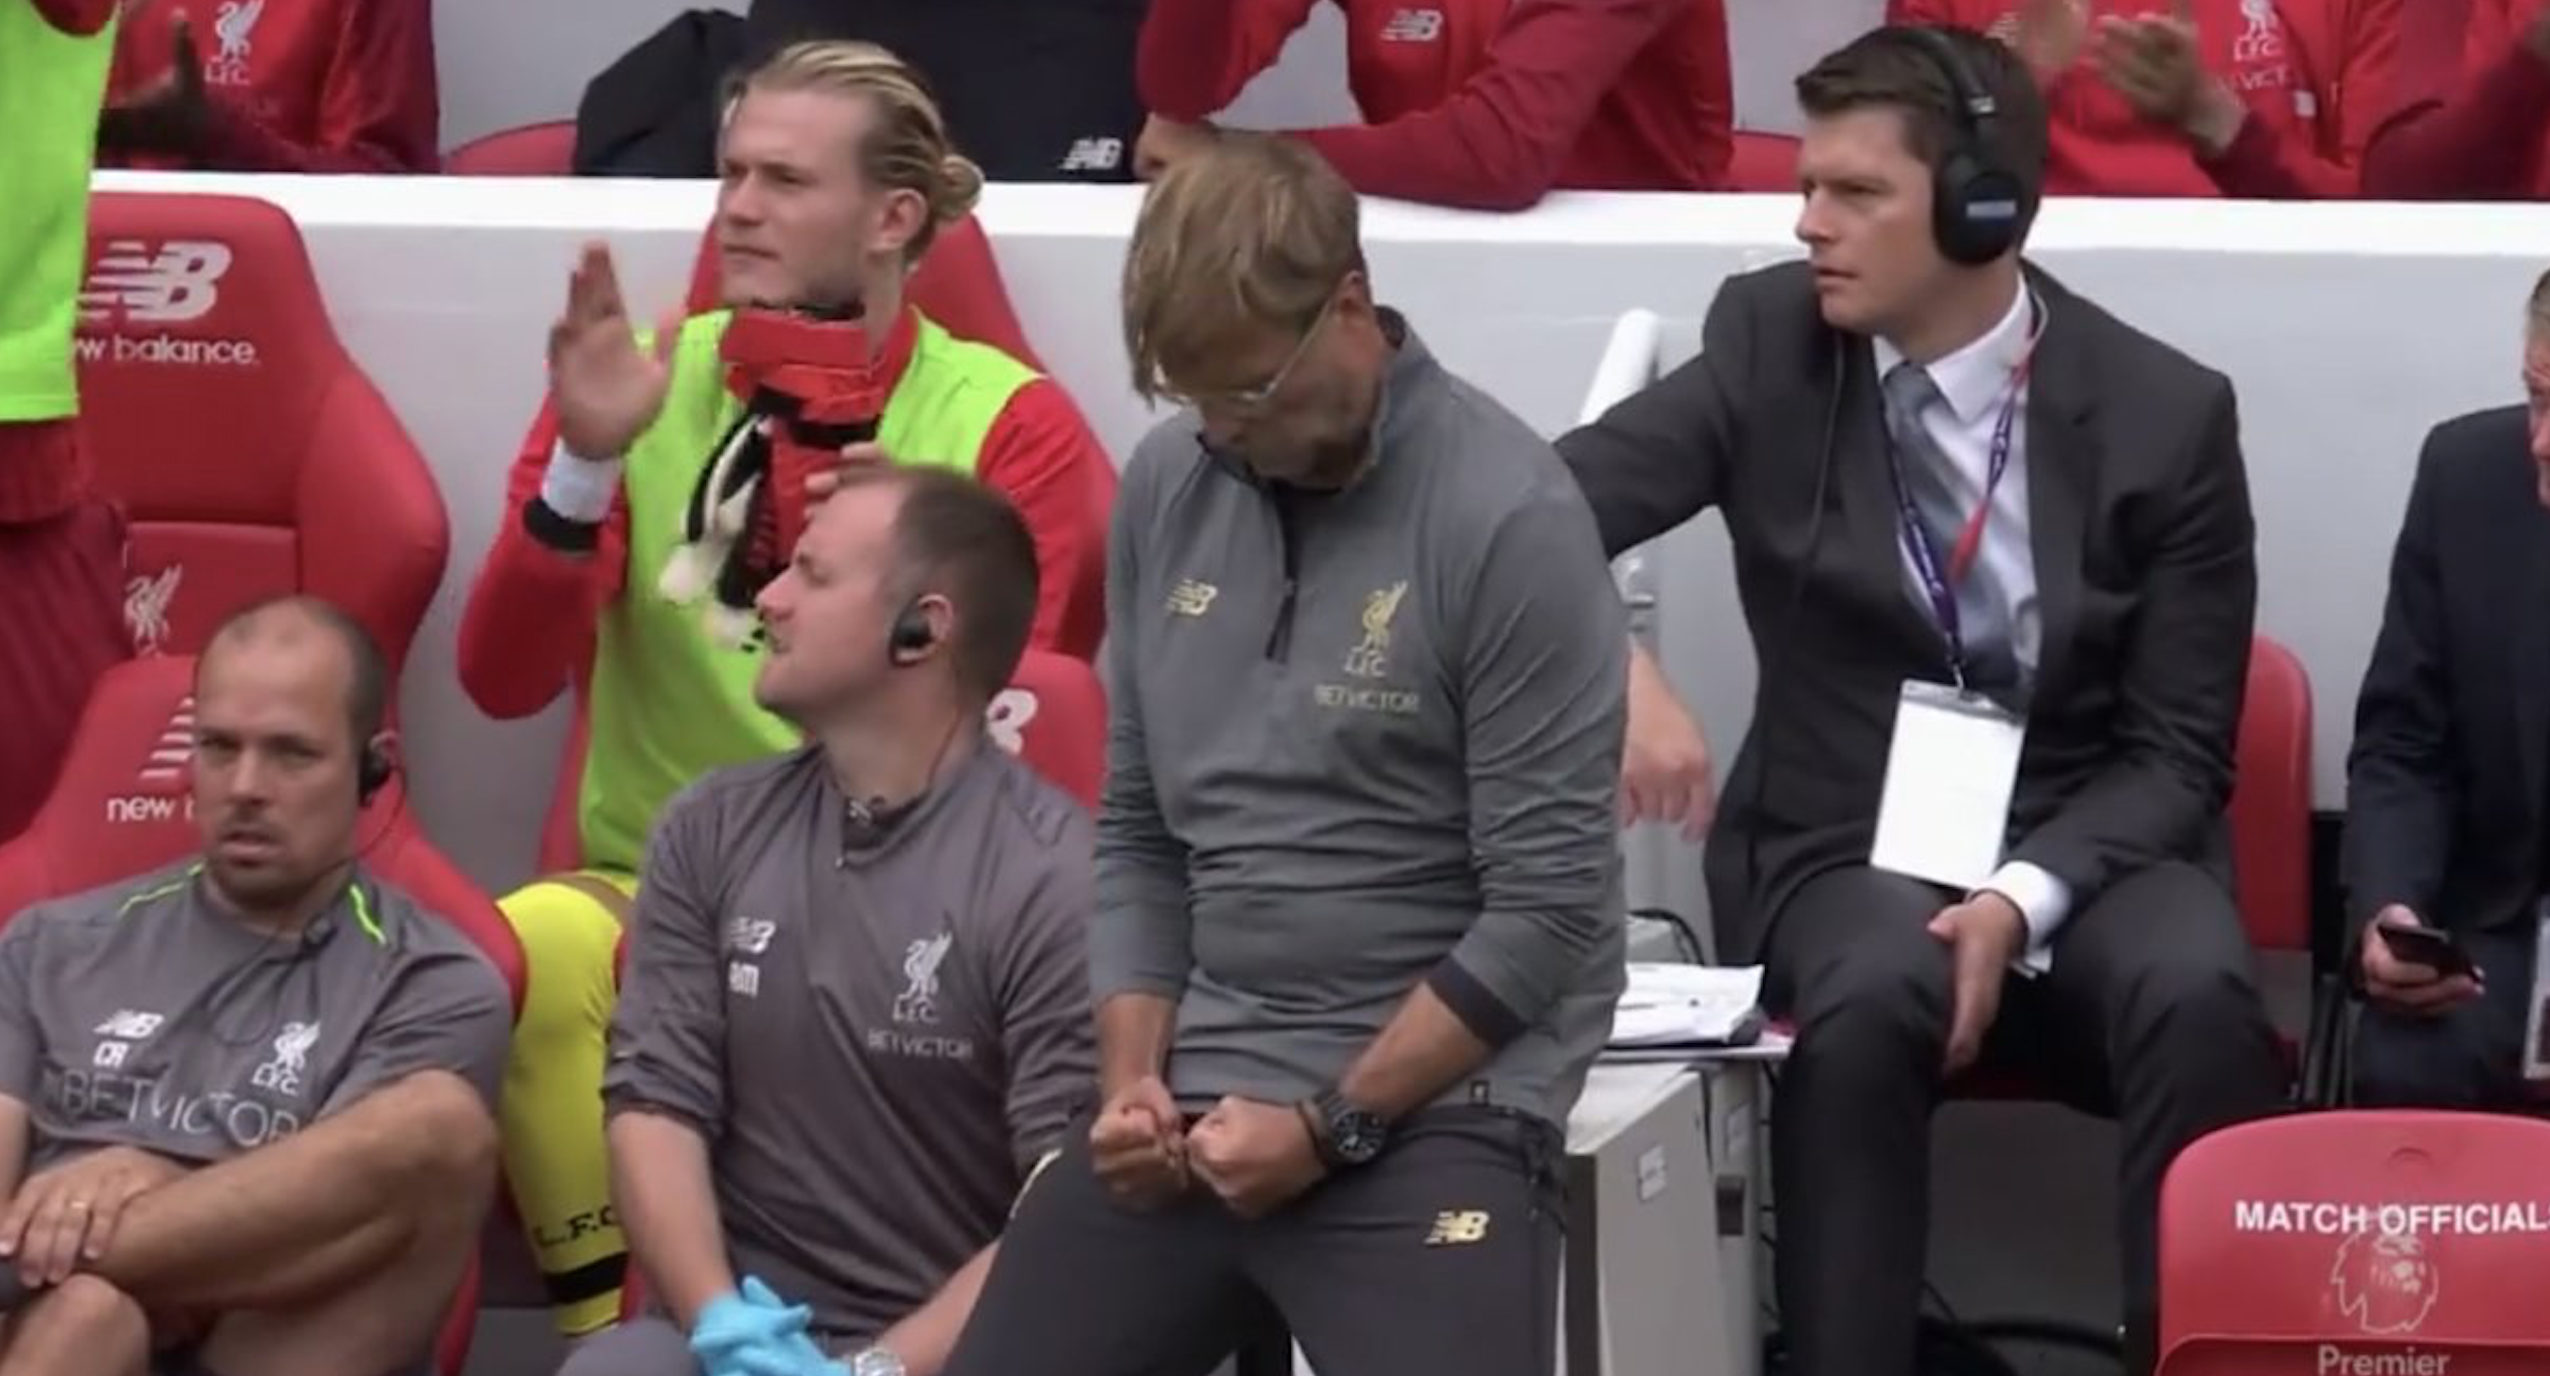 WATCH: Klopp Has Just won The Prize For The Most Questionable Celebration By A Manager